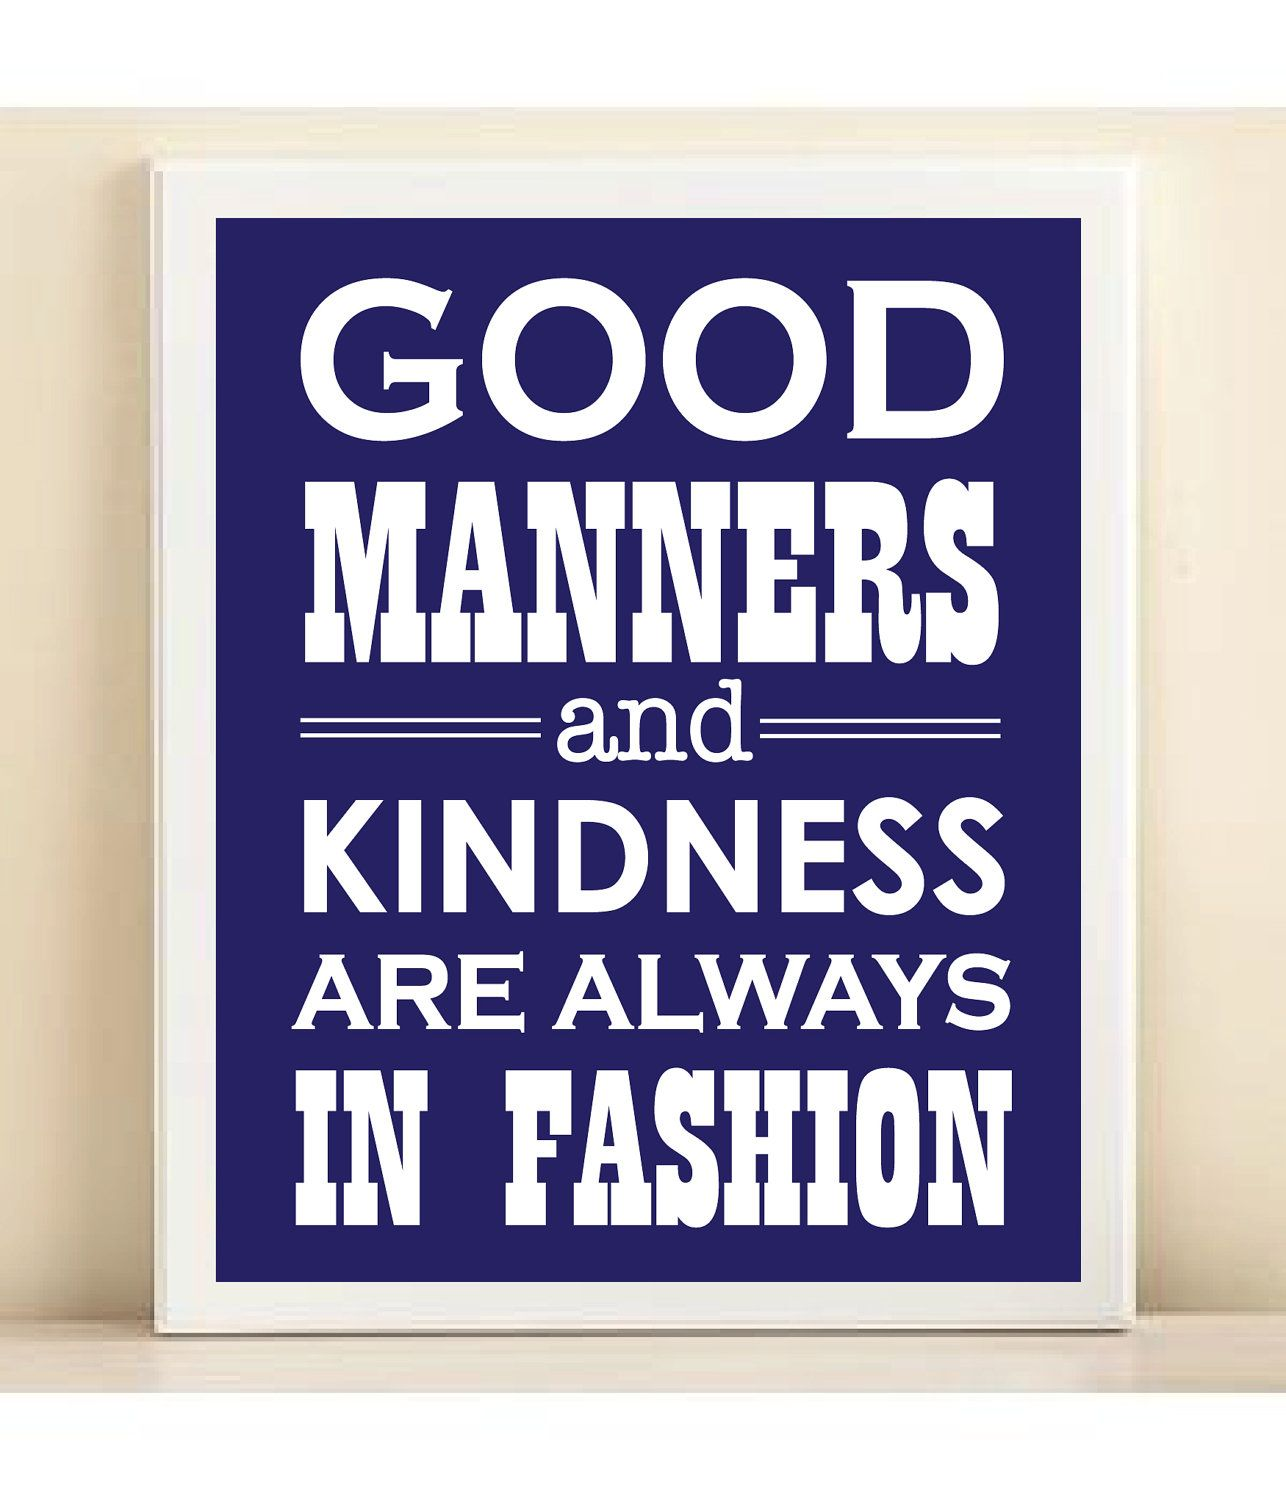 Good manners & kindness